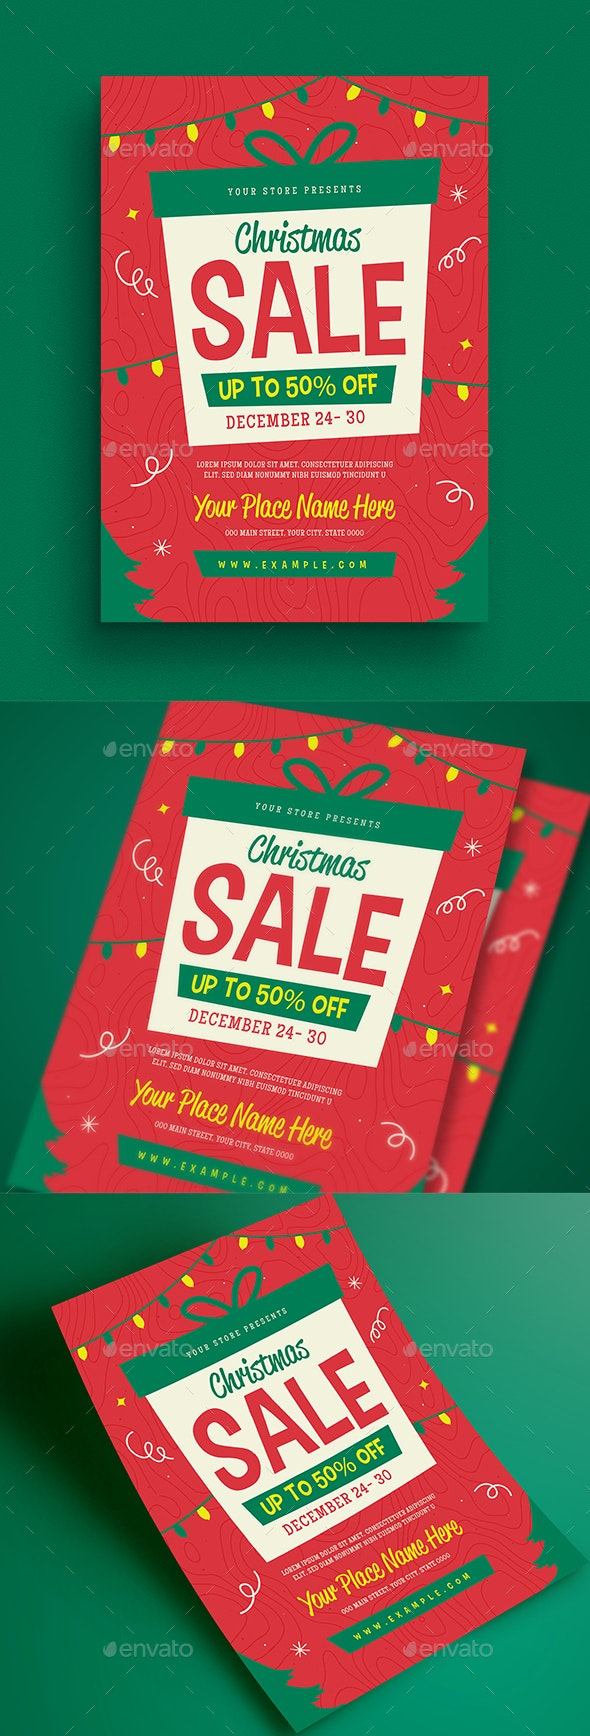 Holiday Christmas Sale Flyer - Holidays Events